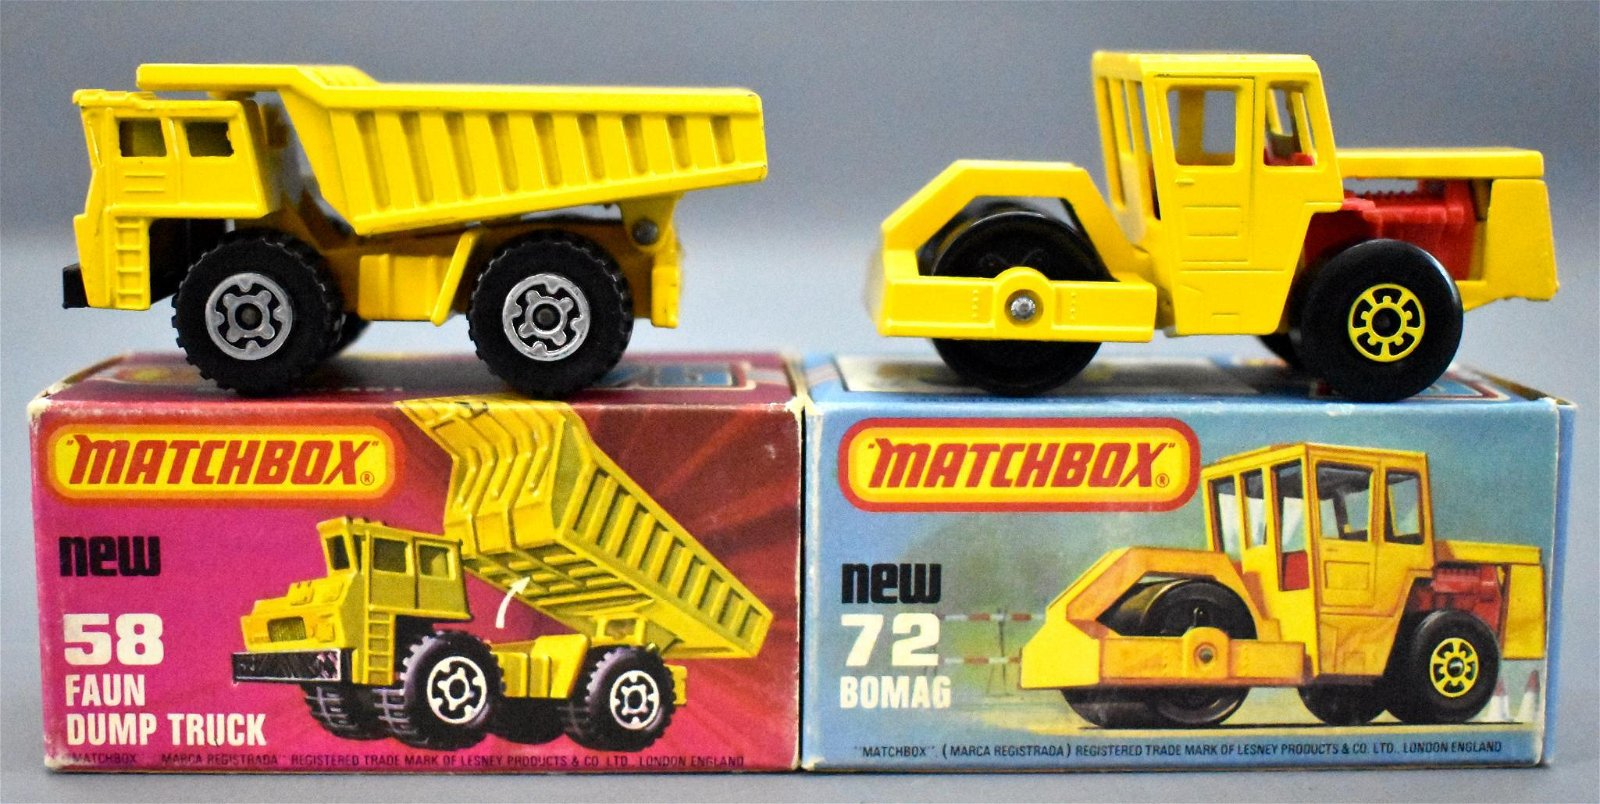 Two vintage Matchbox Superfast die cast toys in